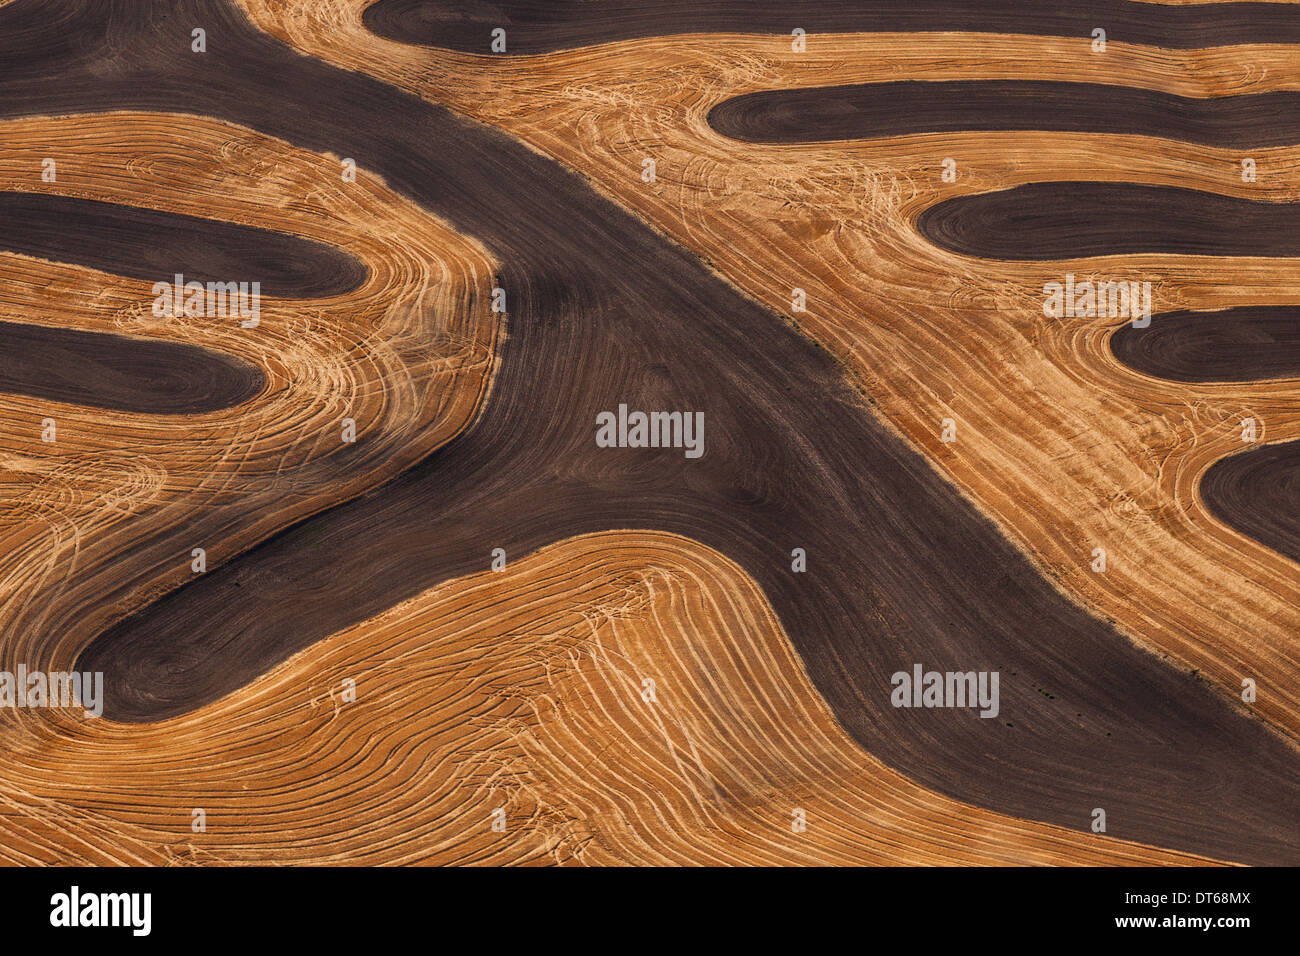 Farmland landscape, with ploughed fields and furrows in Palouse, Washington, USA. An aerial view with natural patterns. - Stock Image